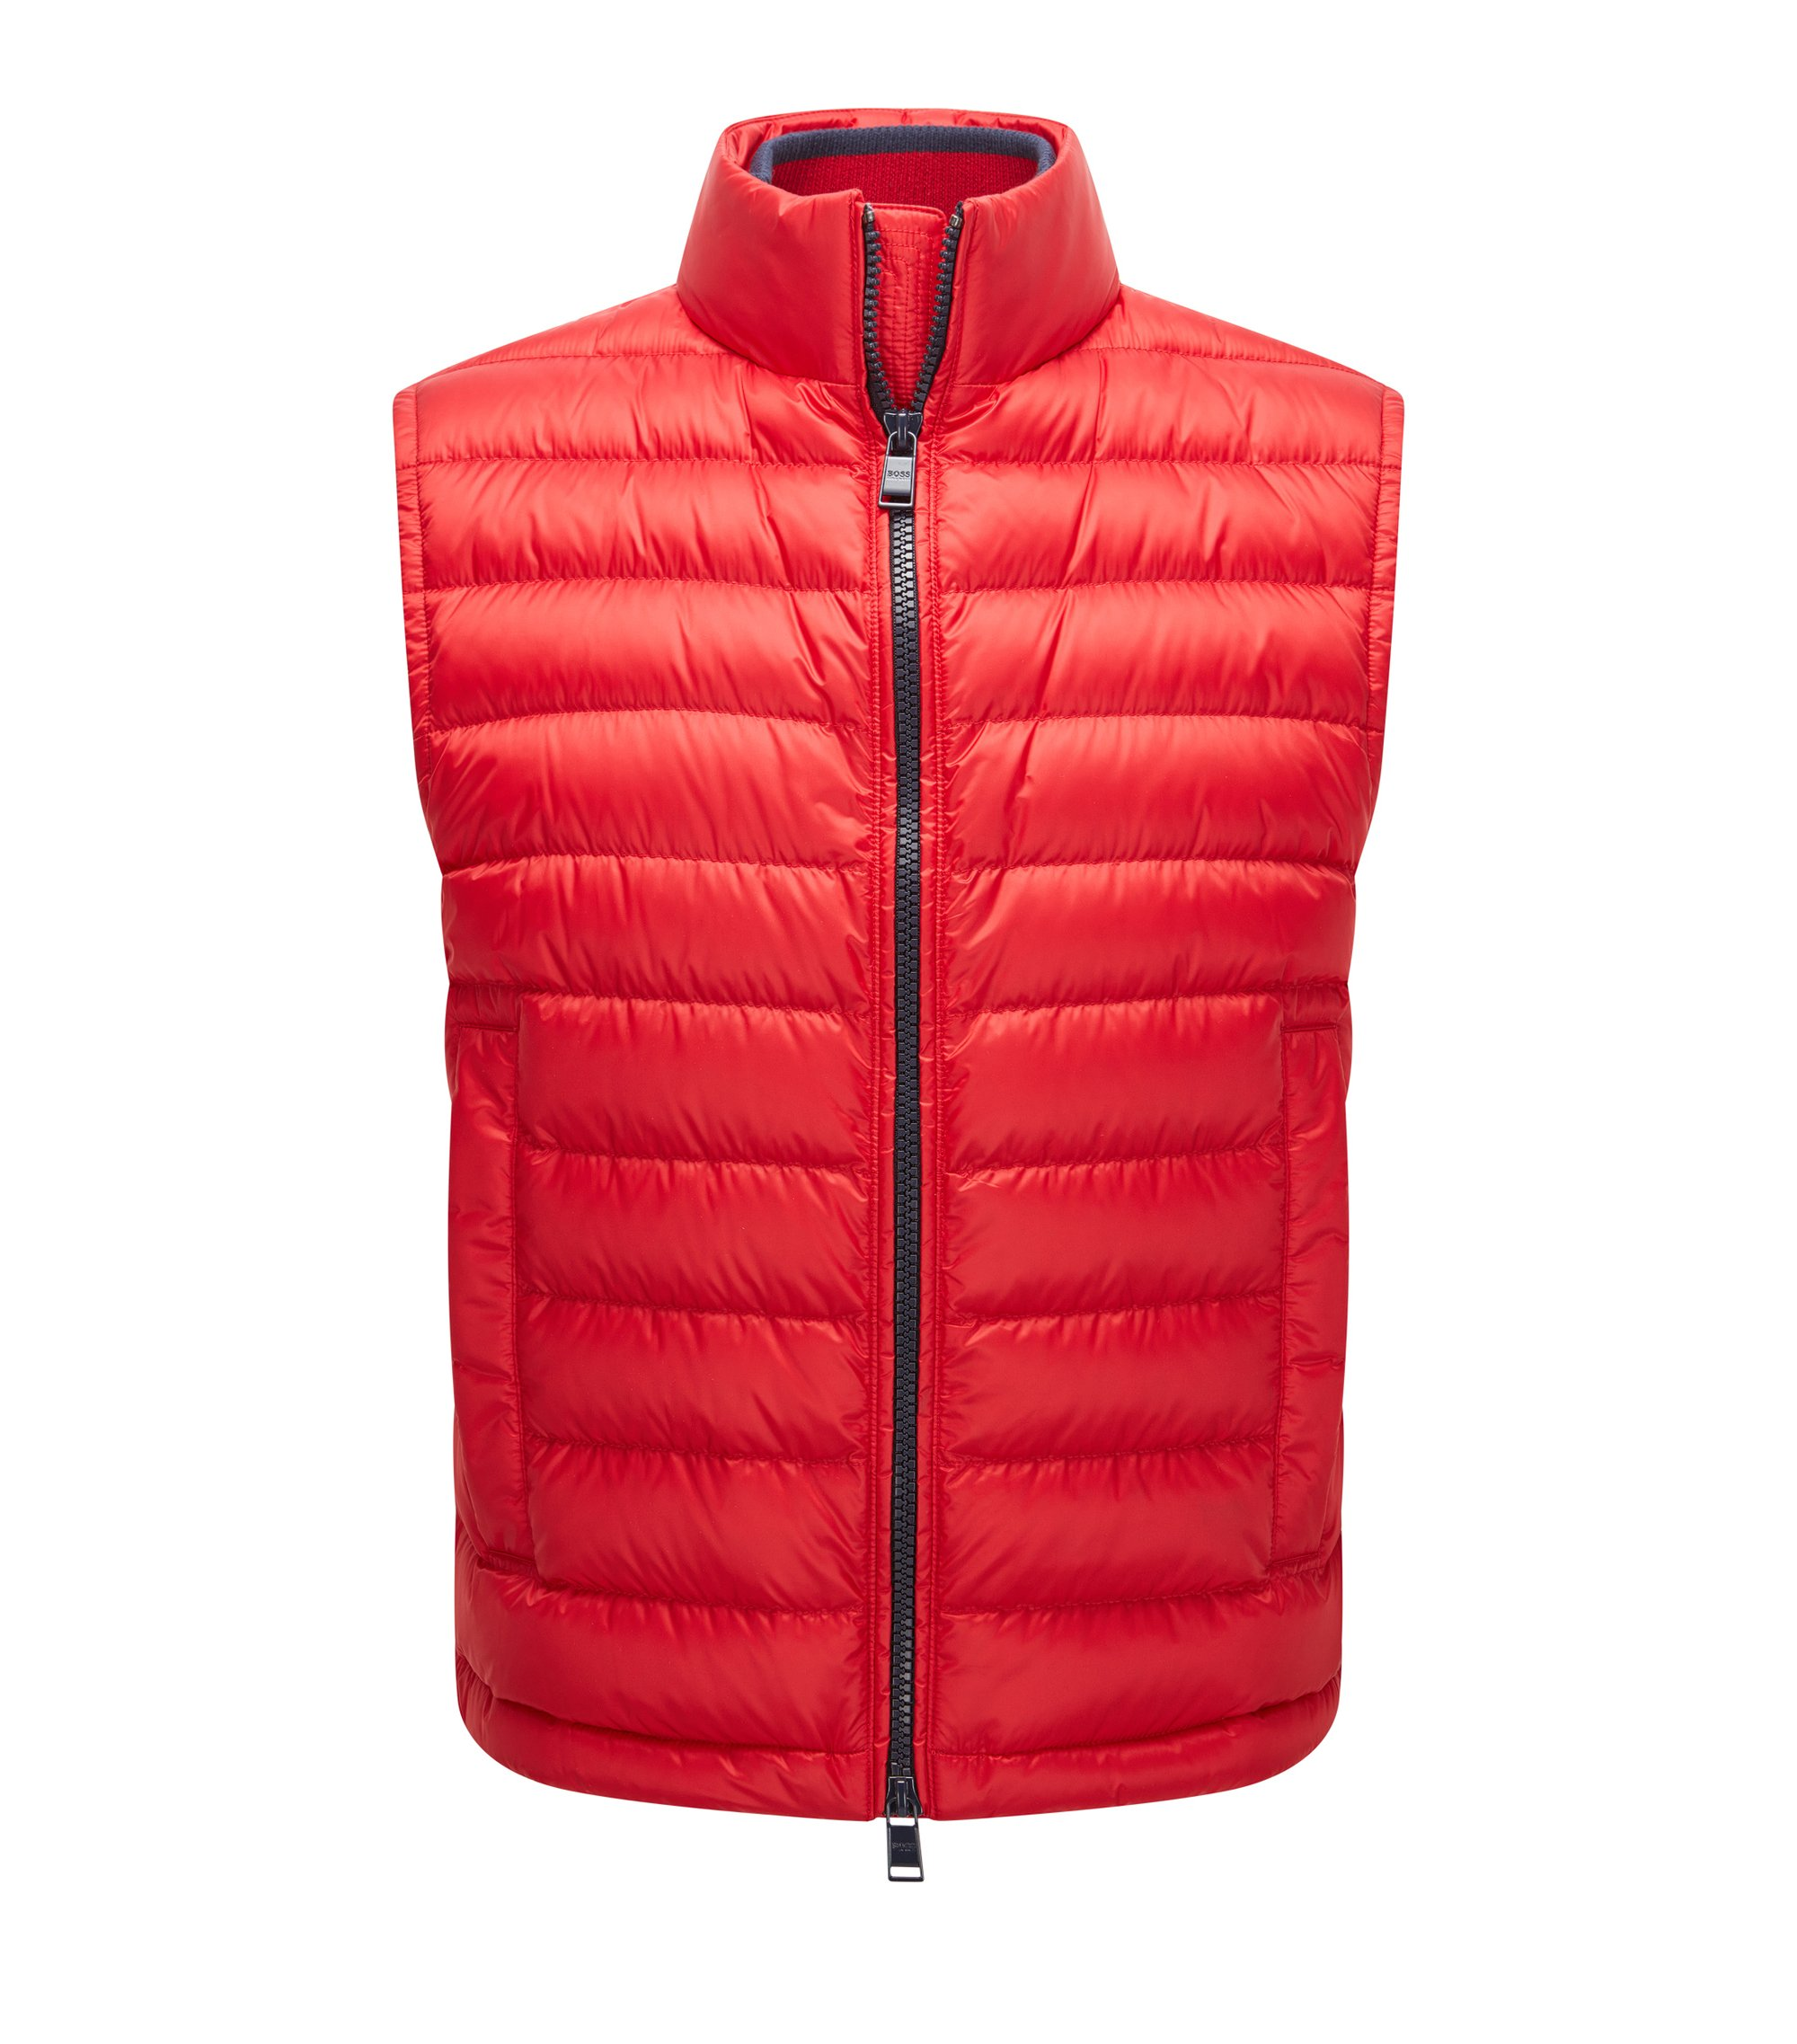 Gilet relaxed fit in tessuto tecnico idrorepellente, Rosso